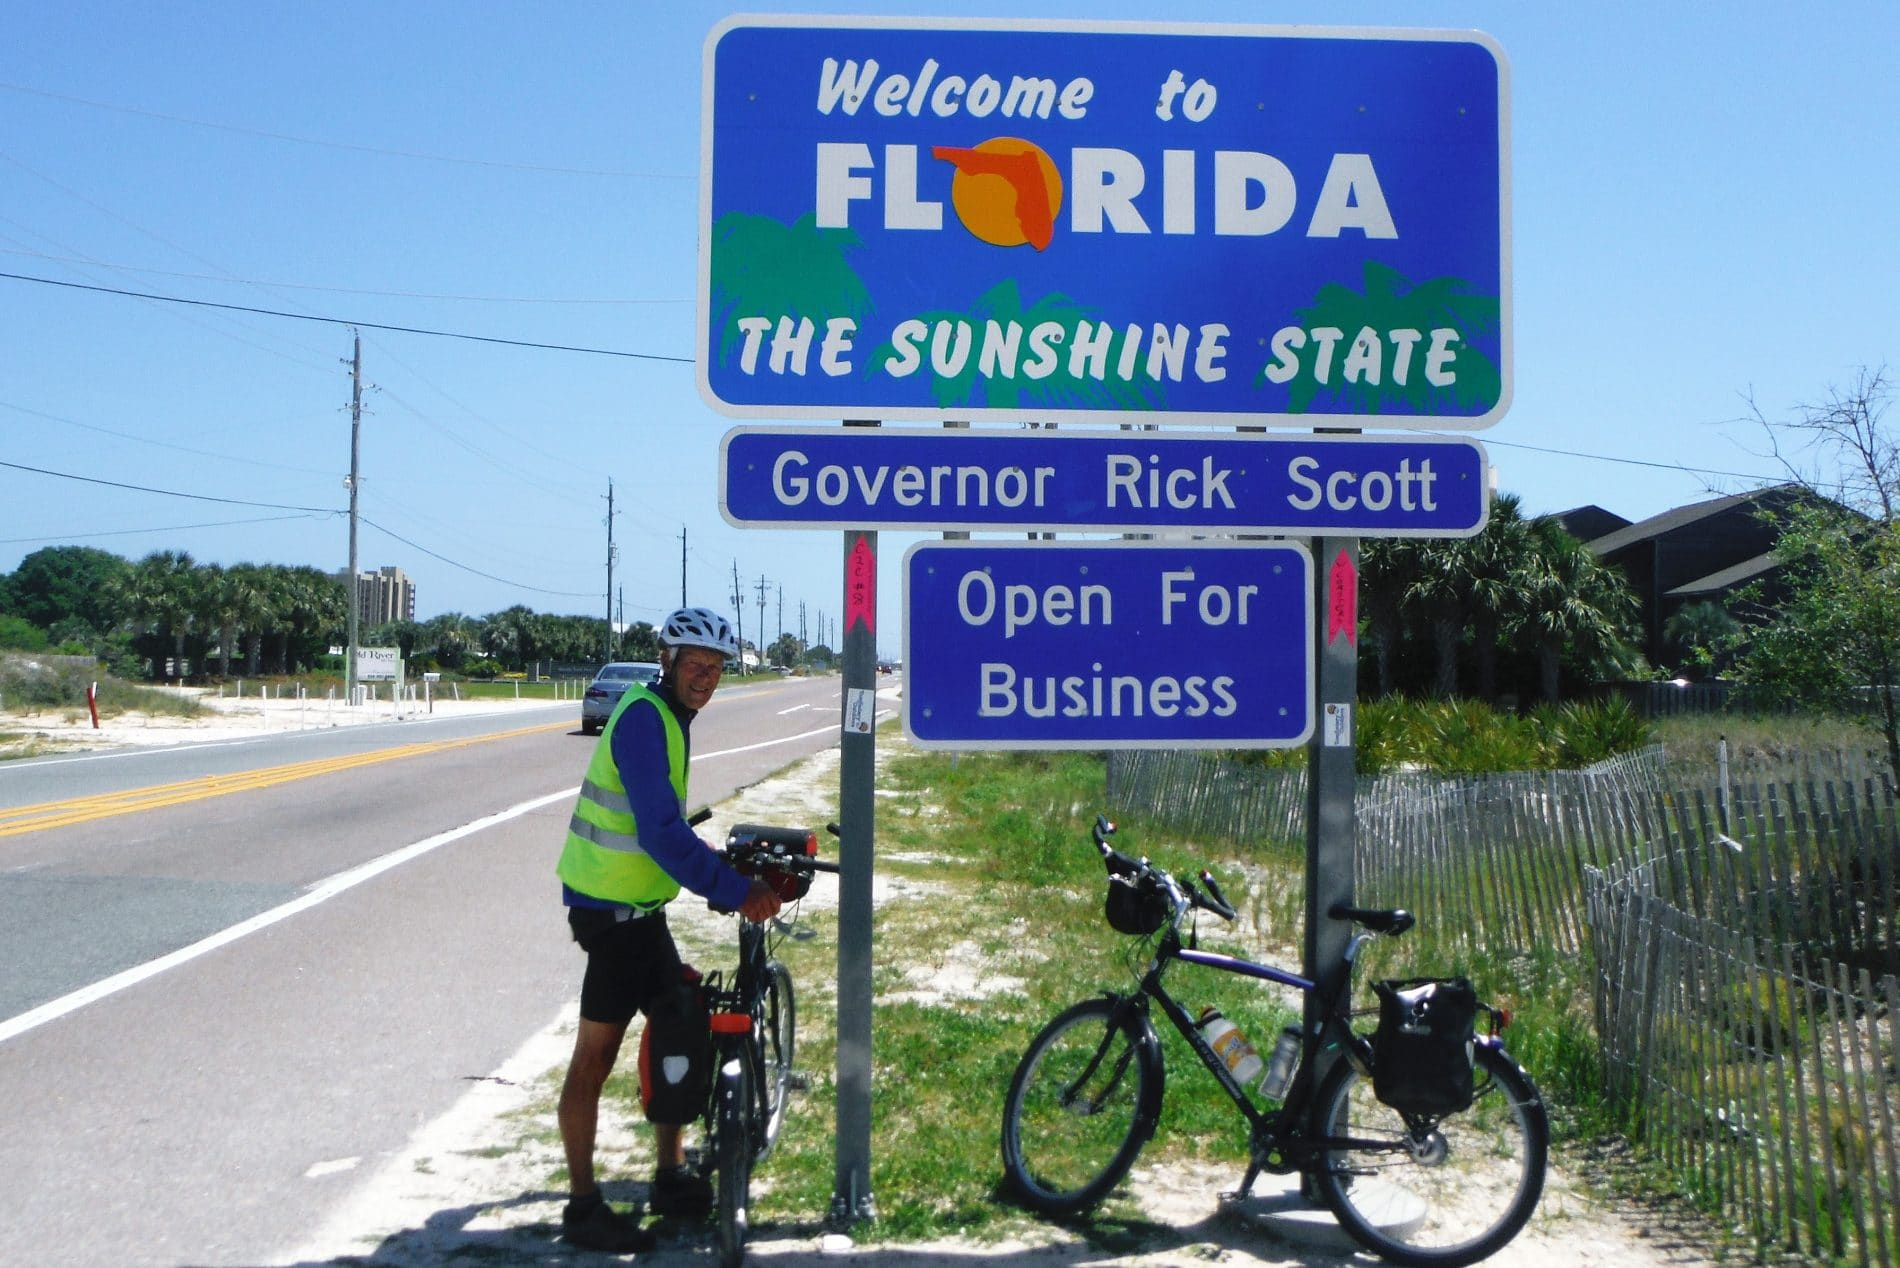 Bikers in front of the Florida State sign